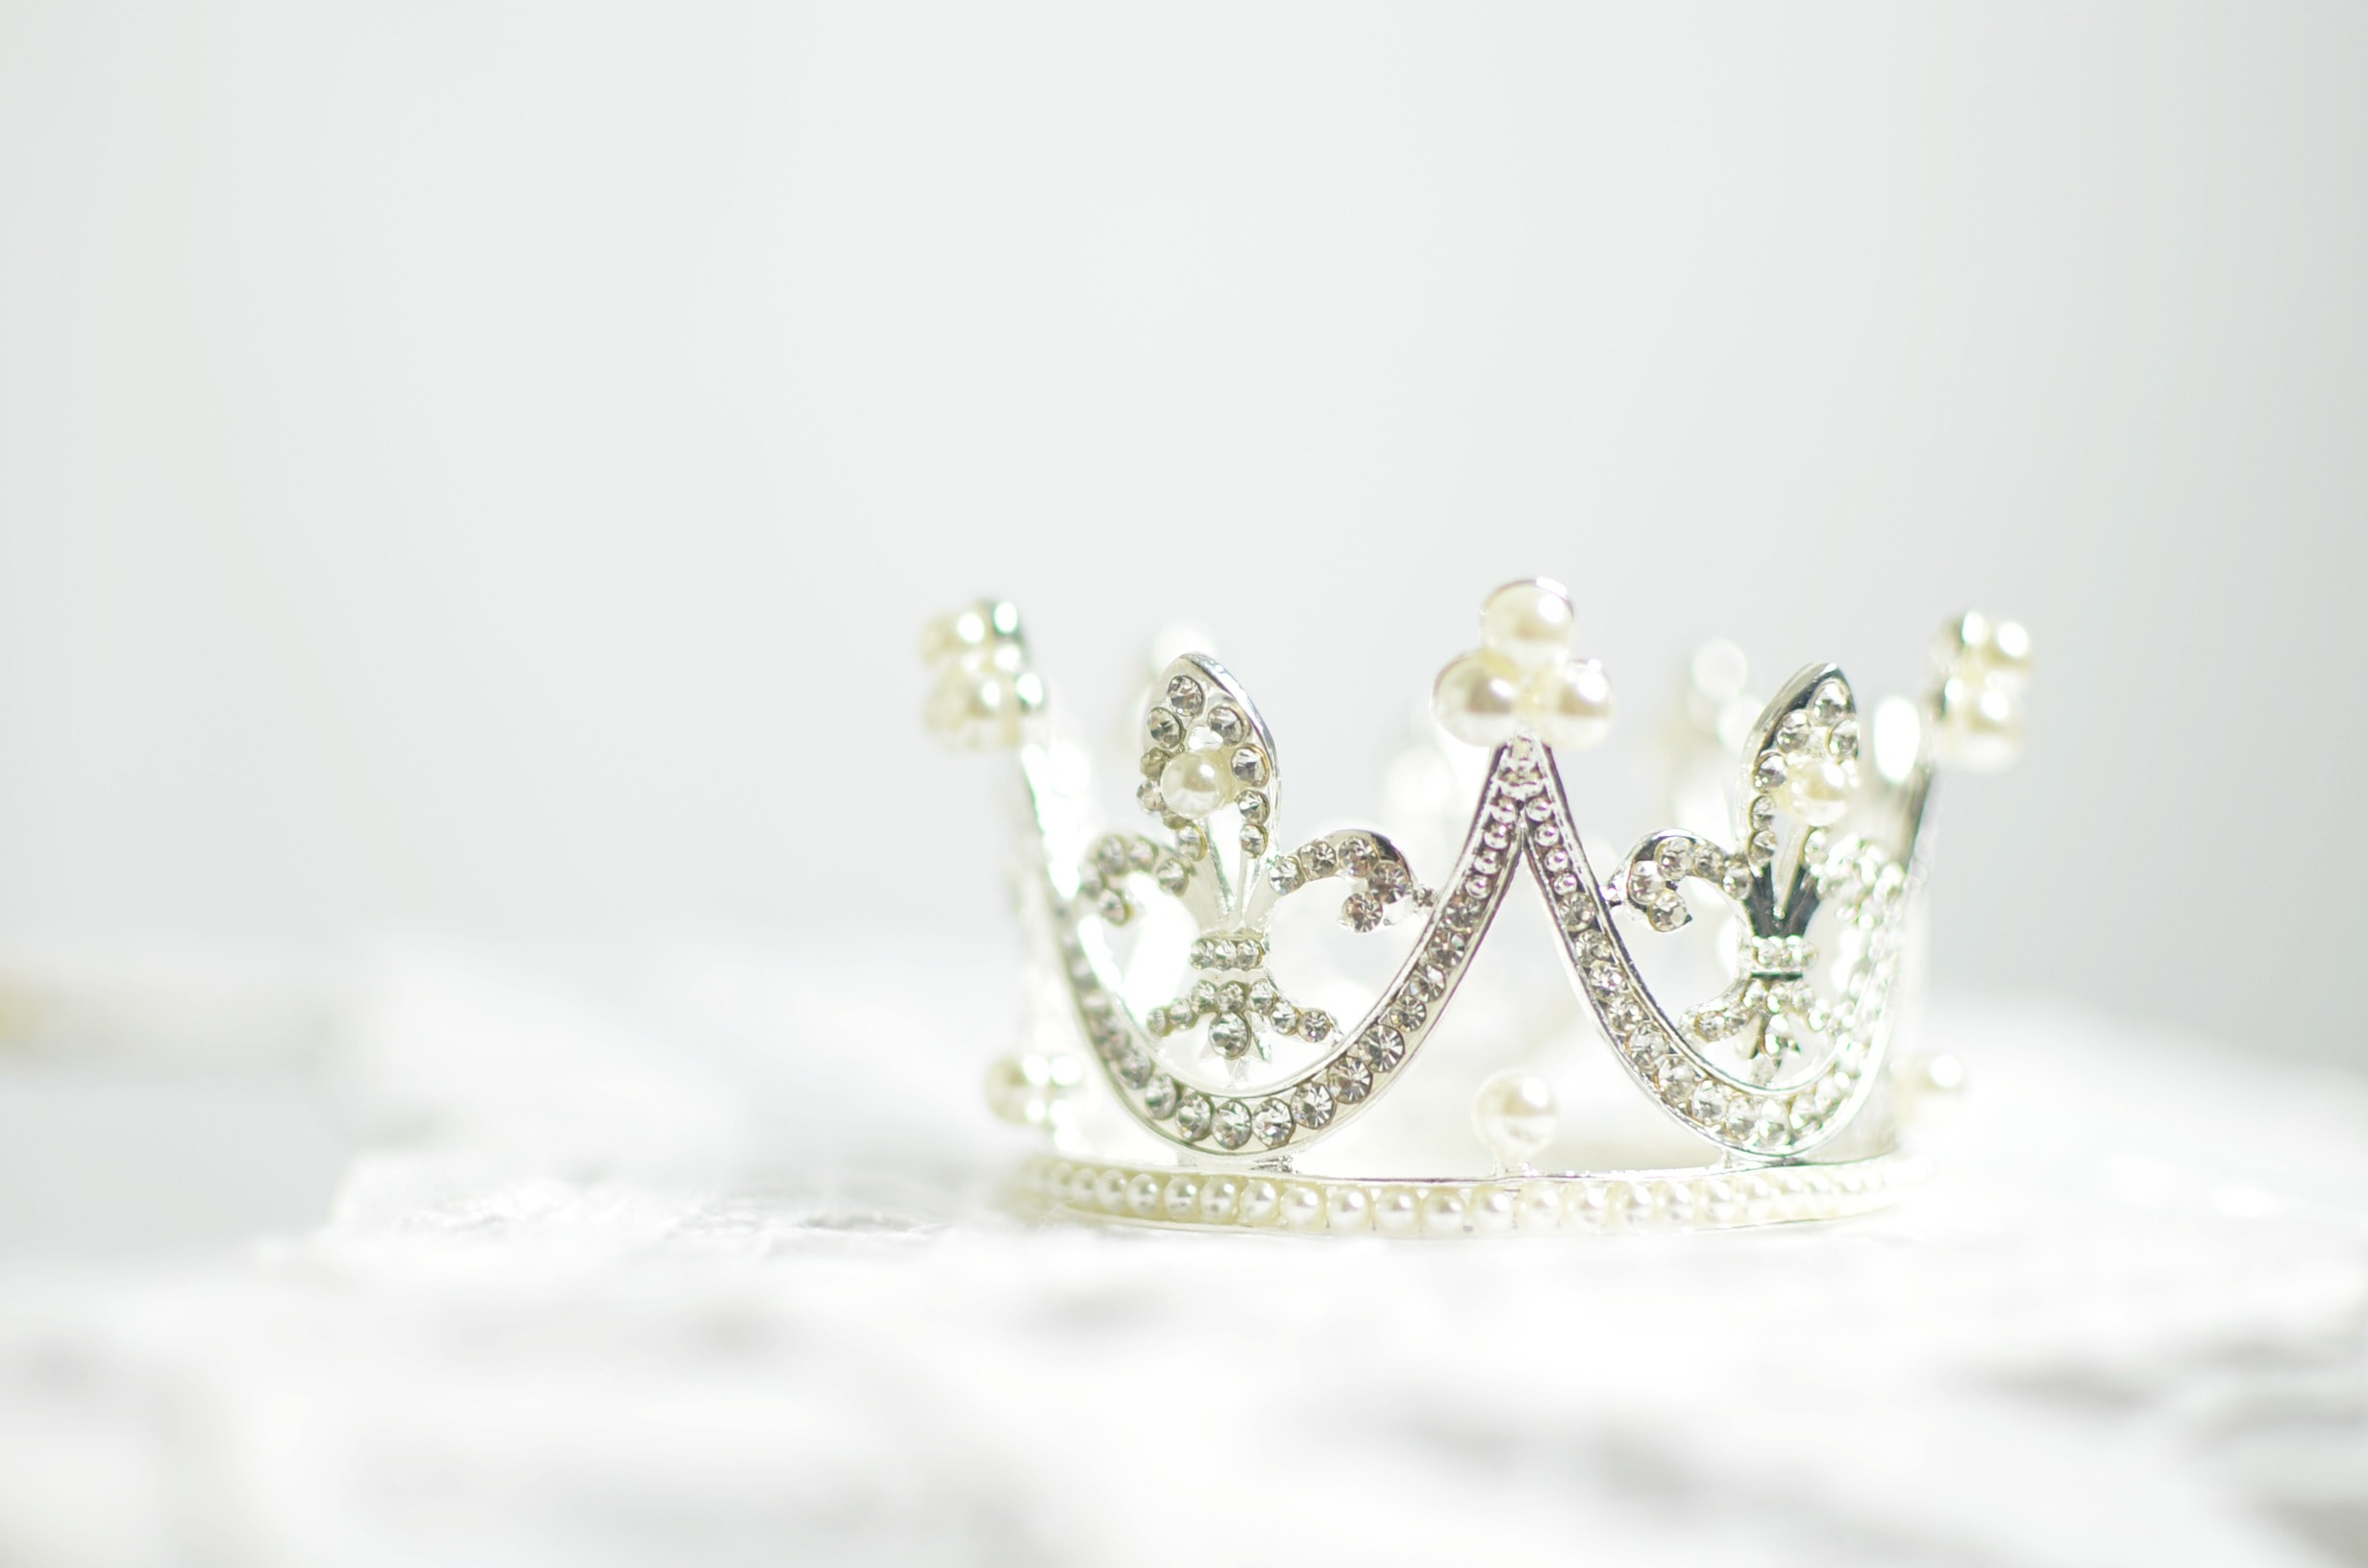 The Beauty Queens king stories